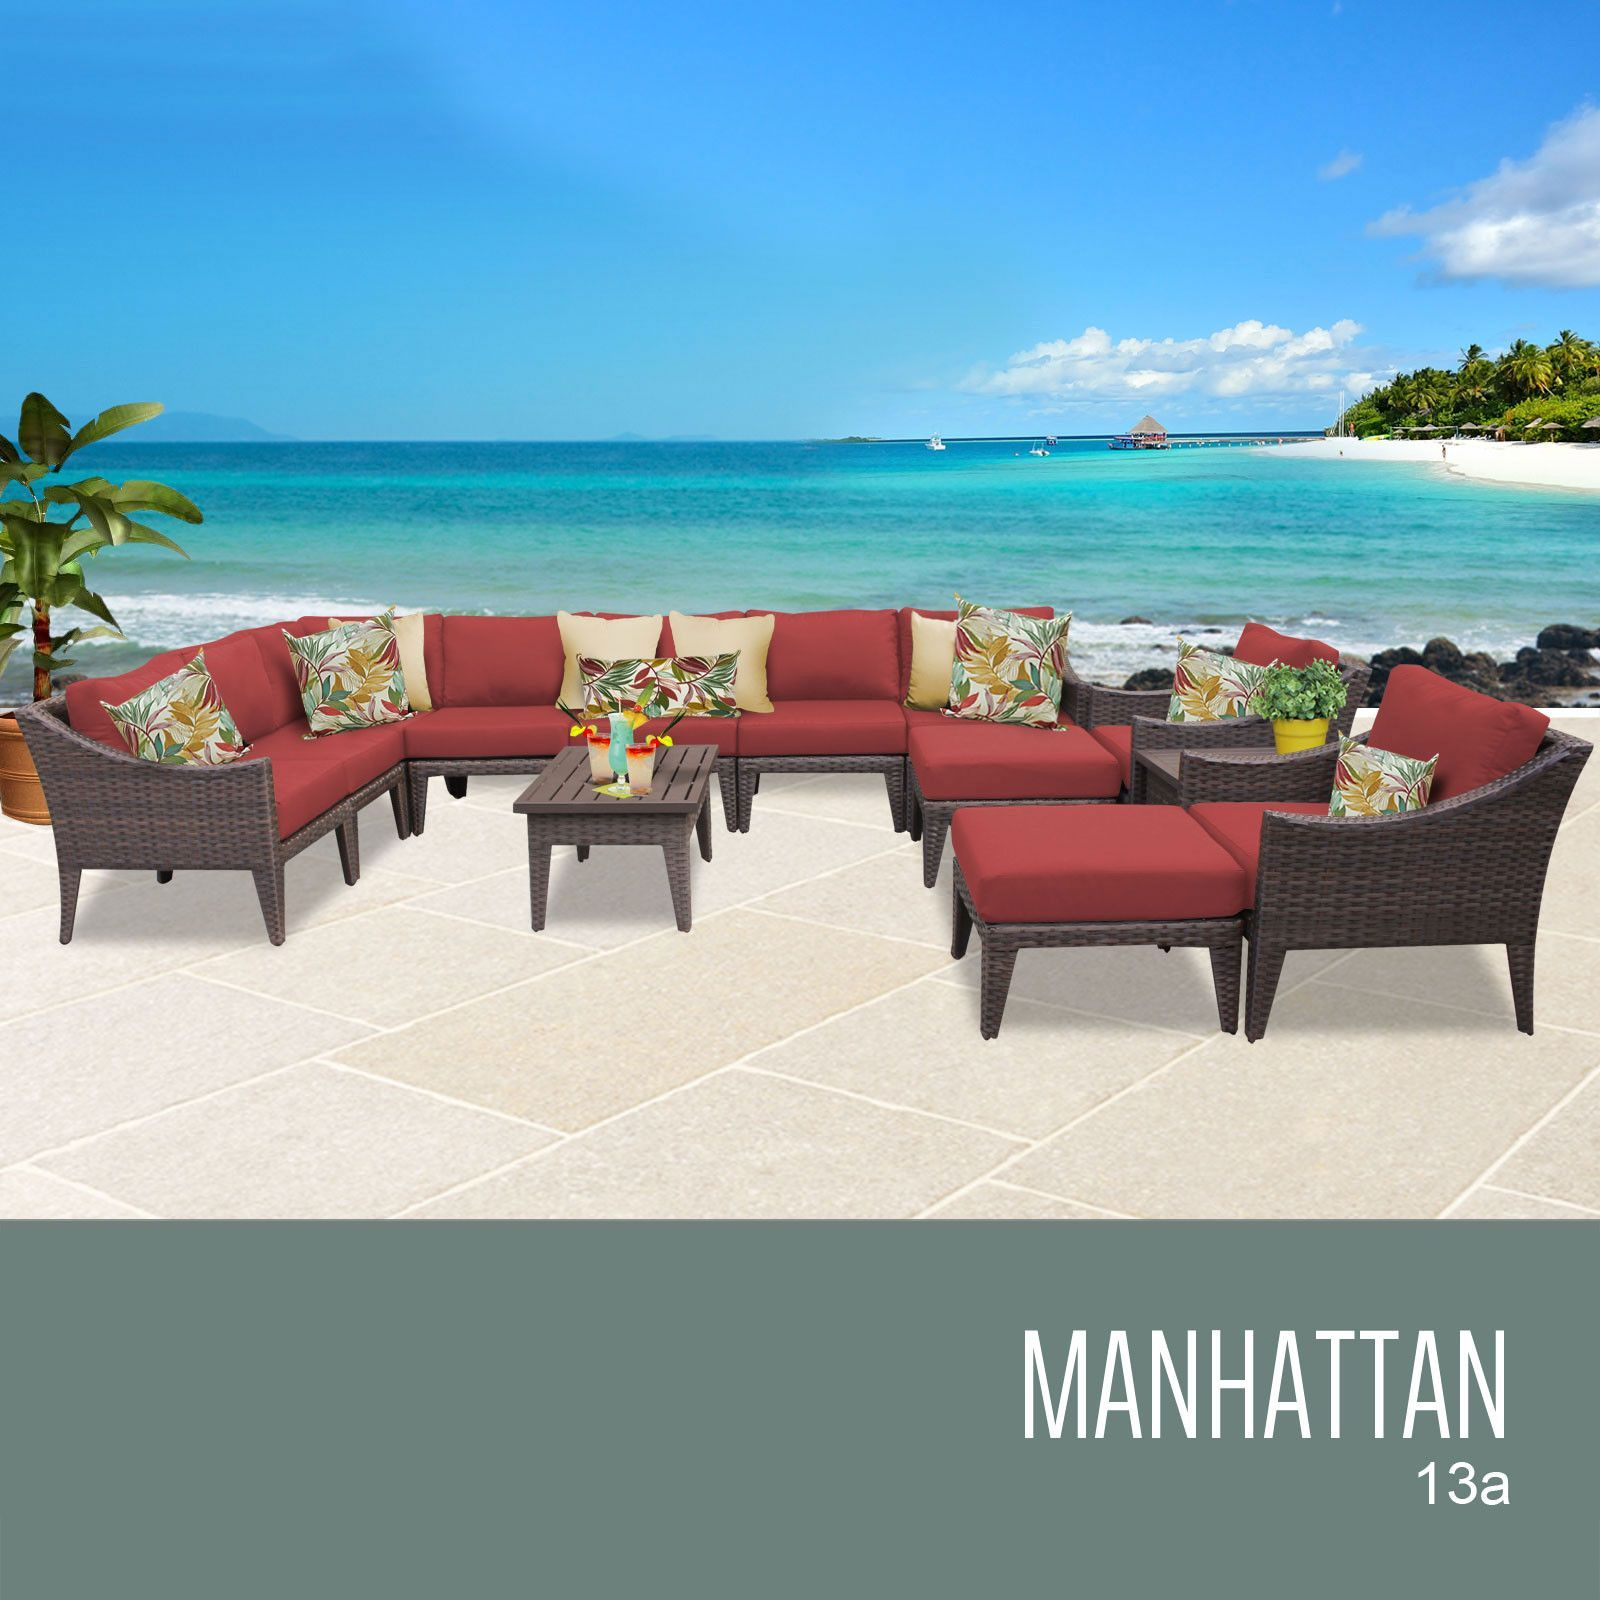 TKC MANHATTAN 13 Piece Outdoor Wicker Patio Furniture Set 13a, Terracotta